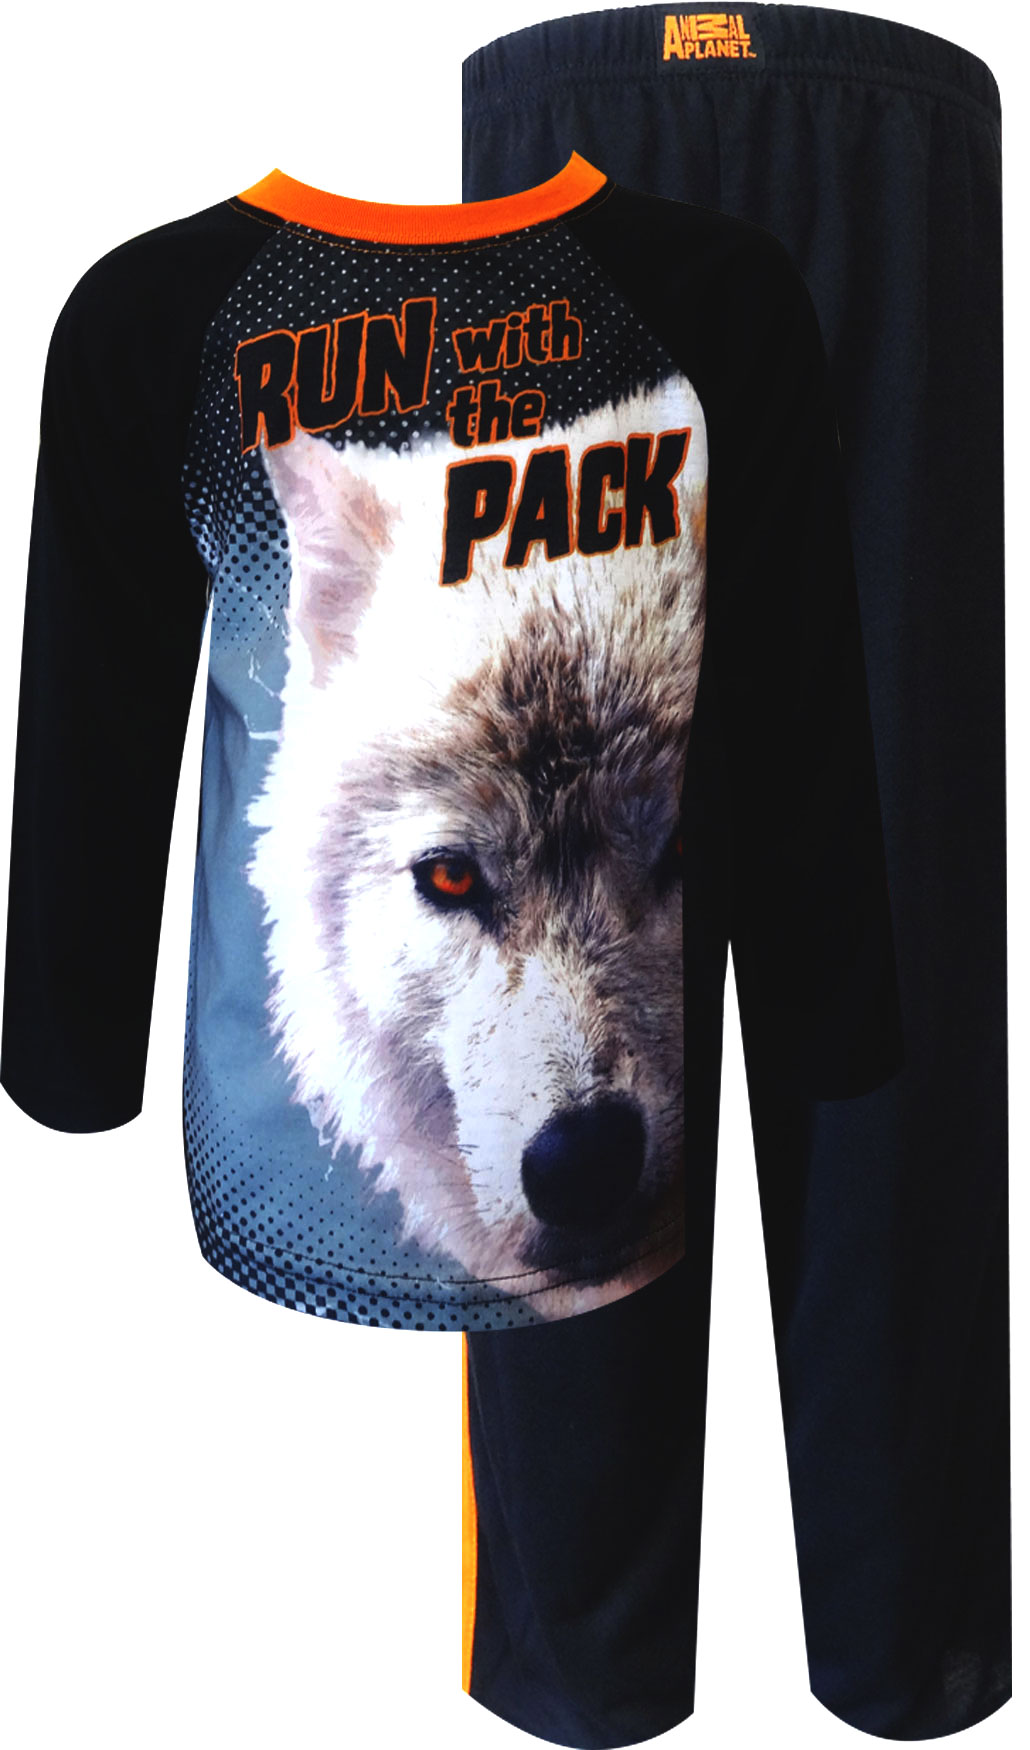 Image of Animal Planet Wolf Pack Toddler Pajama for boys